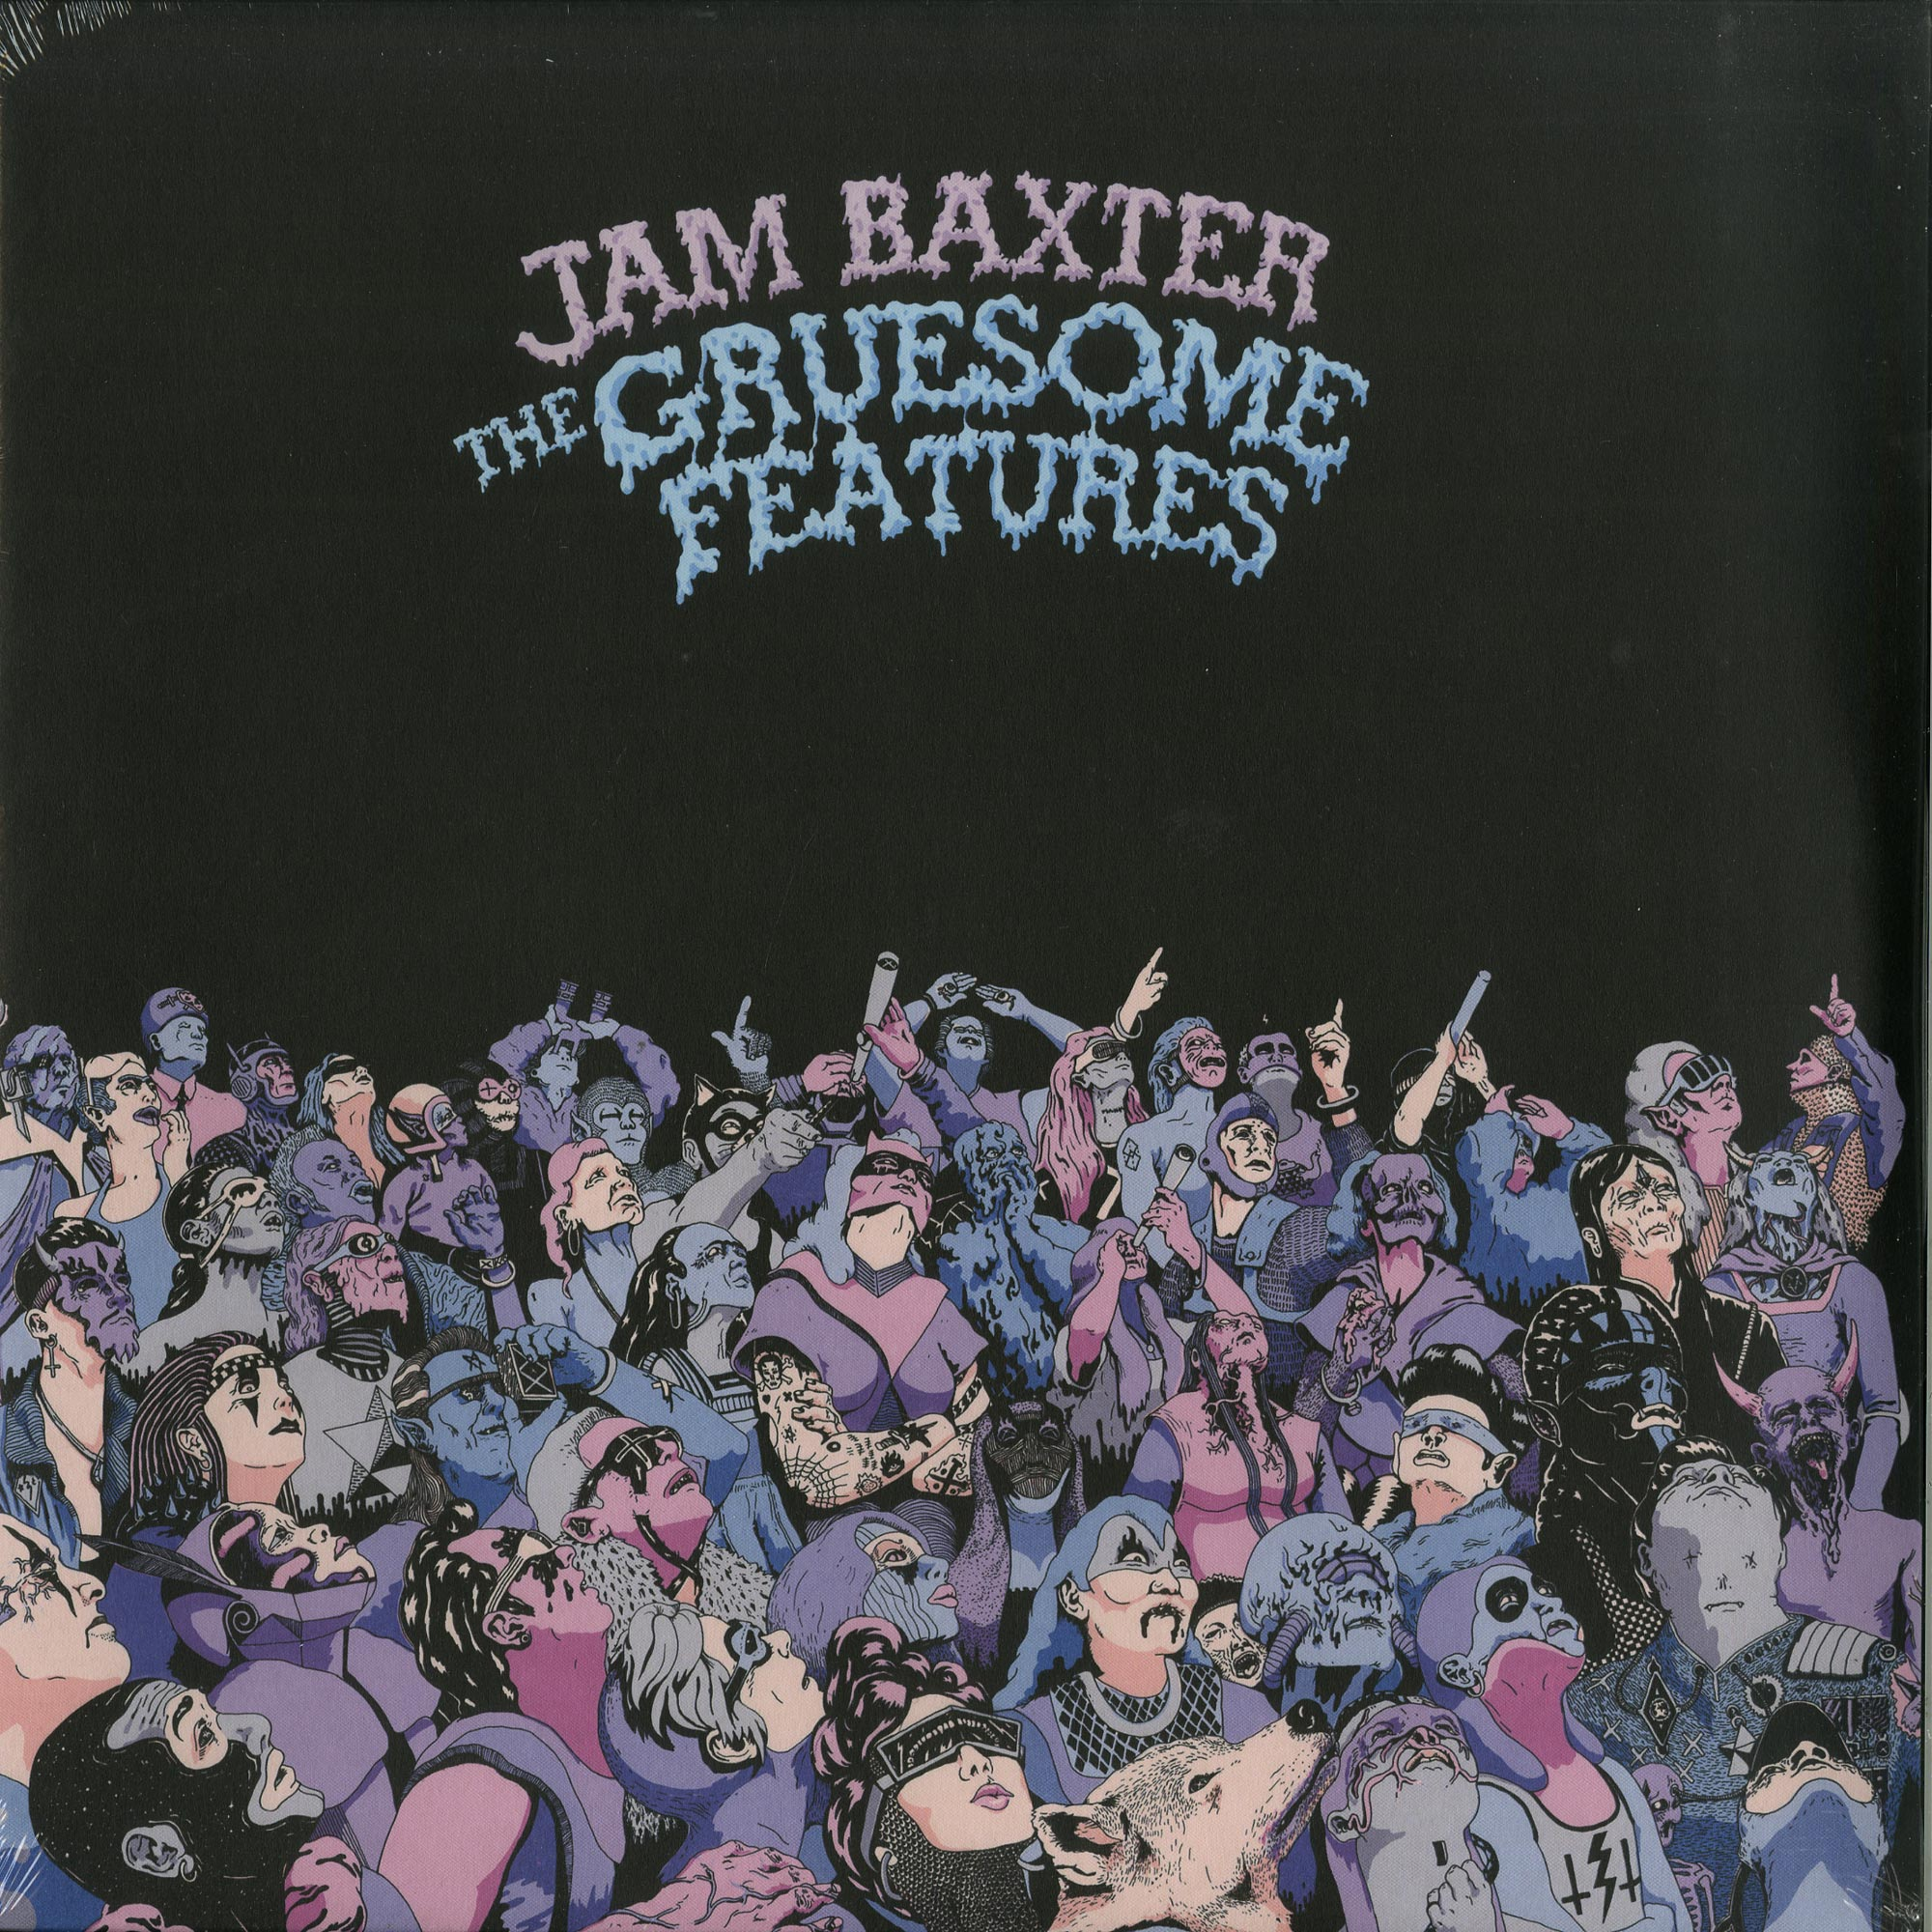 Jam Baxter - THE GRUESOME FEATURES